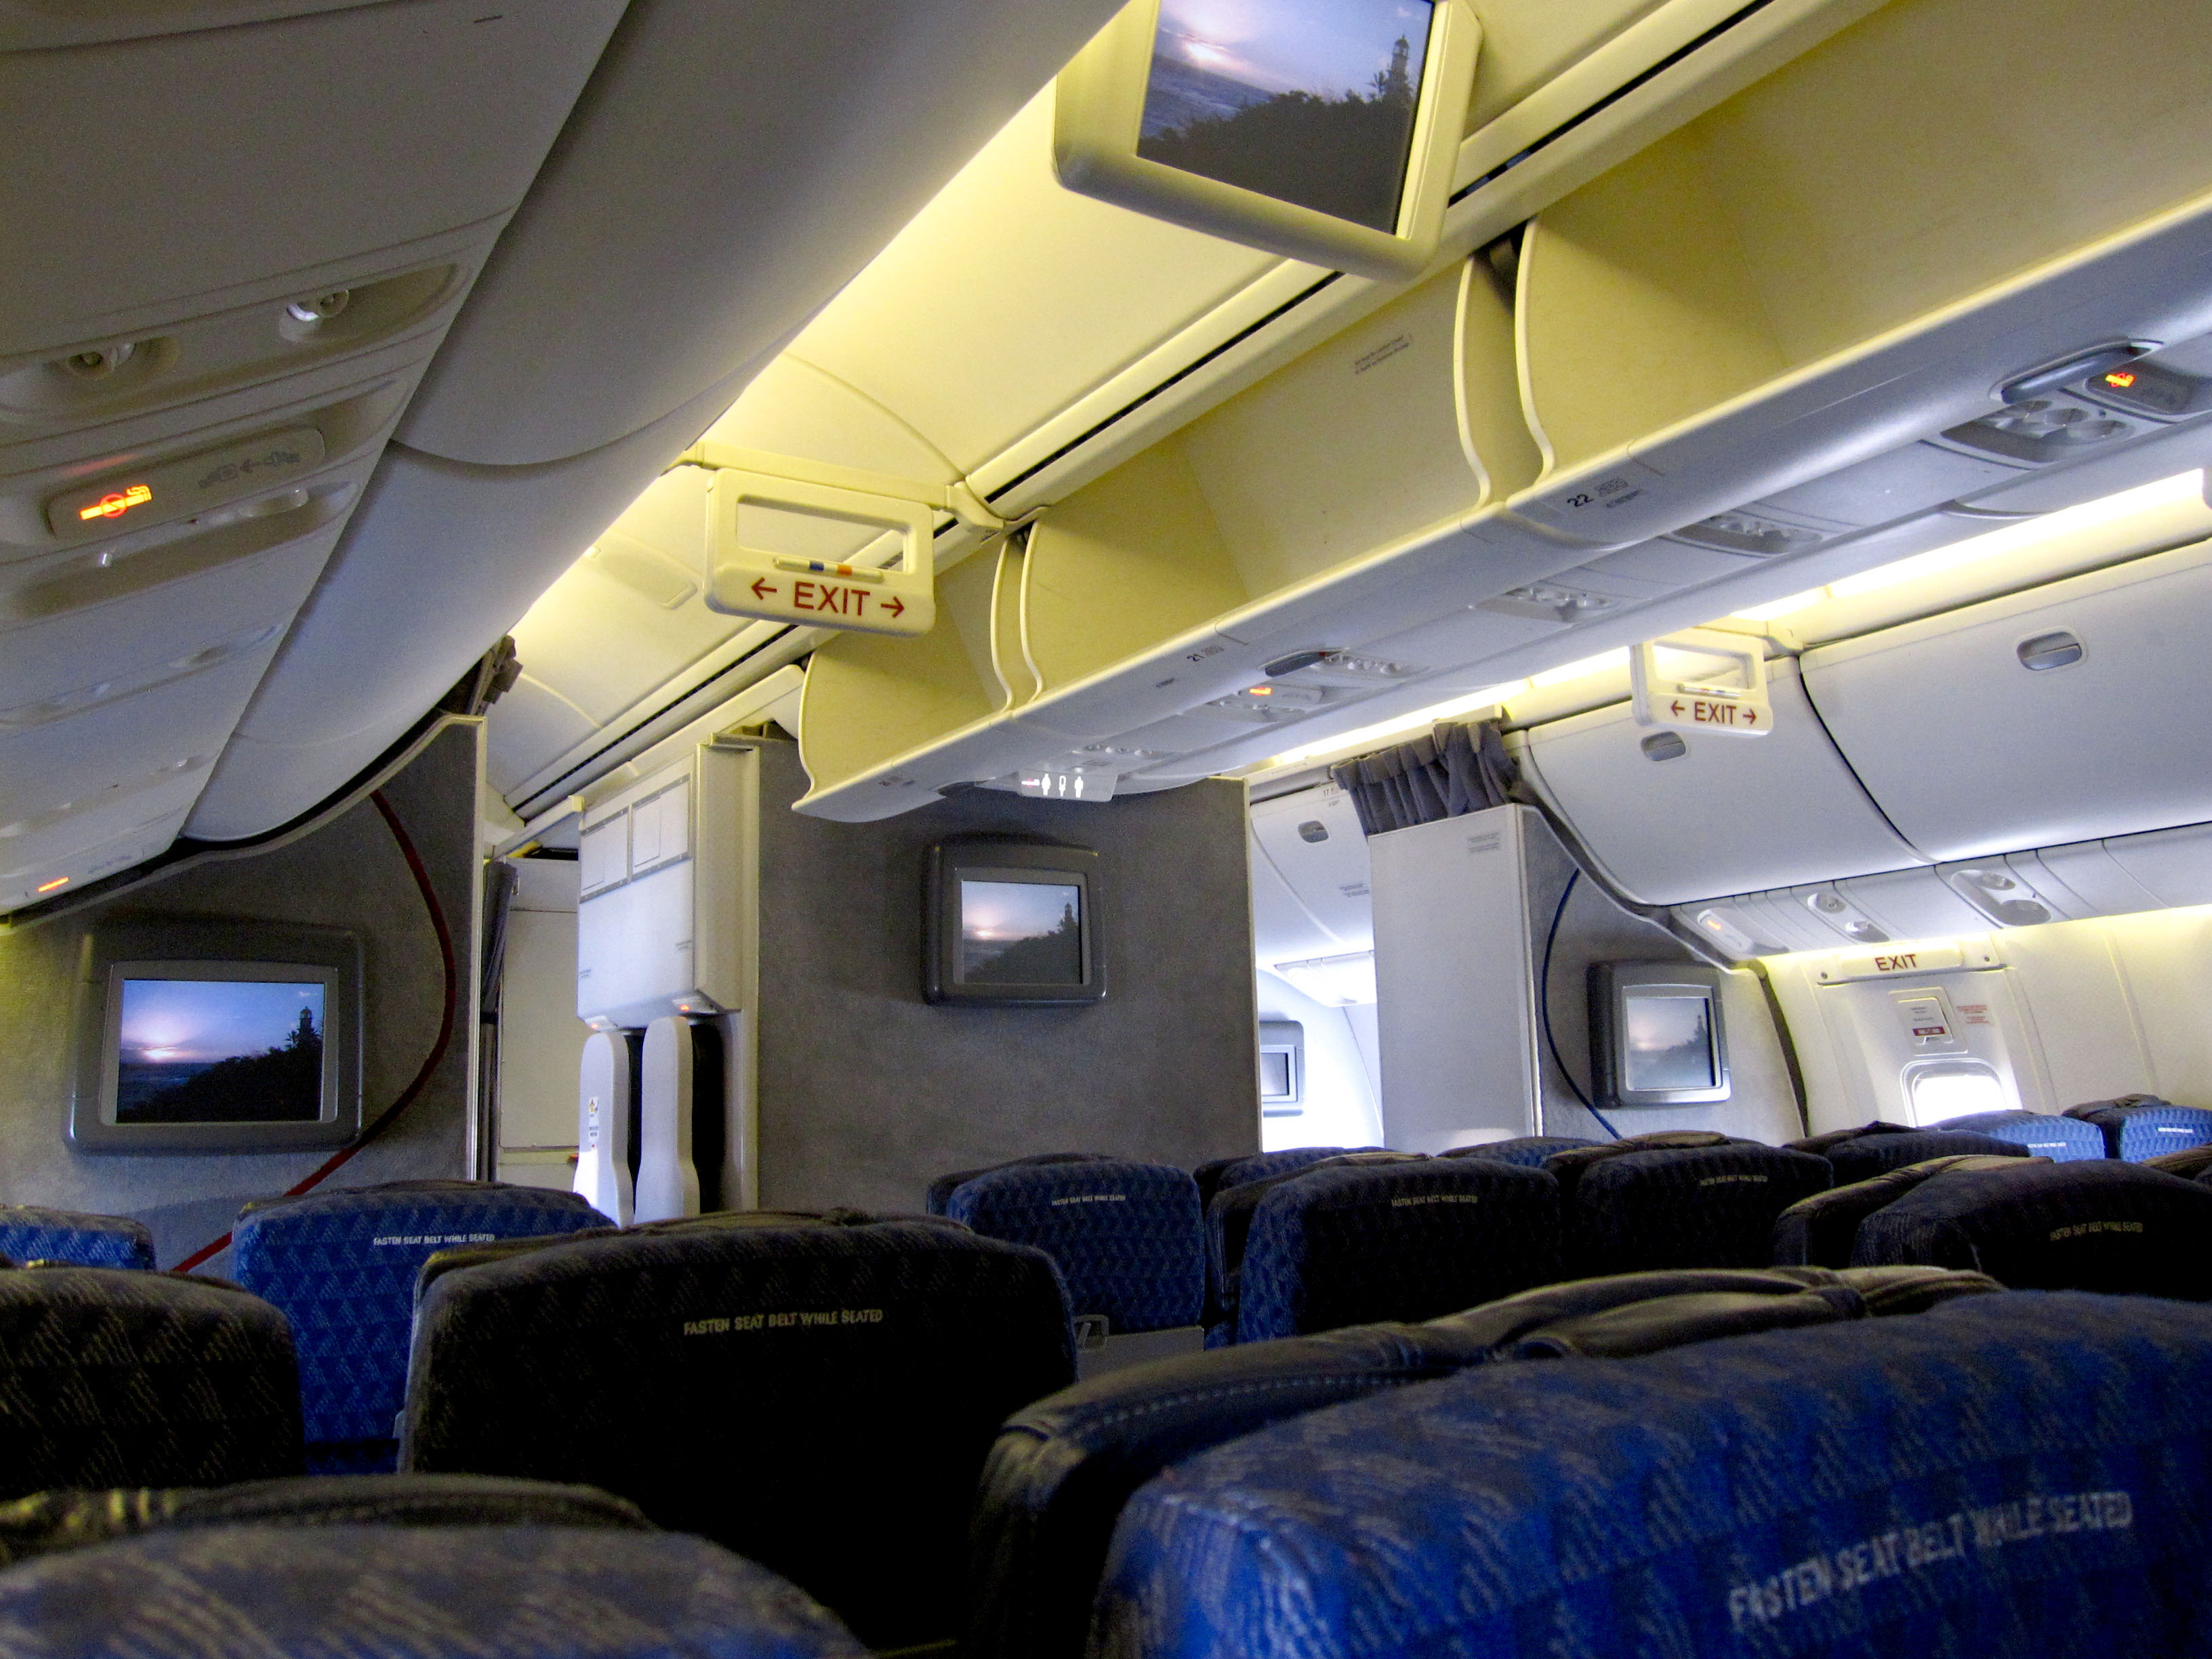 File:American Airlines Boeing 767-300ER Economy class 2009